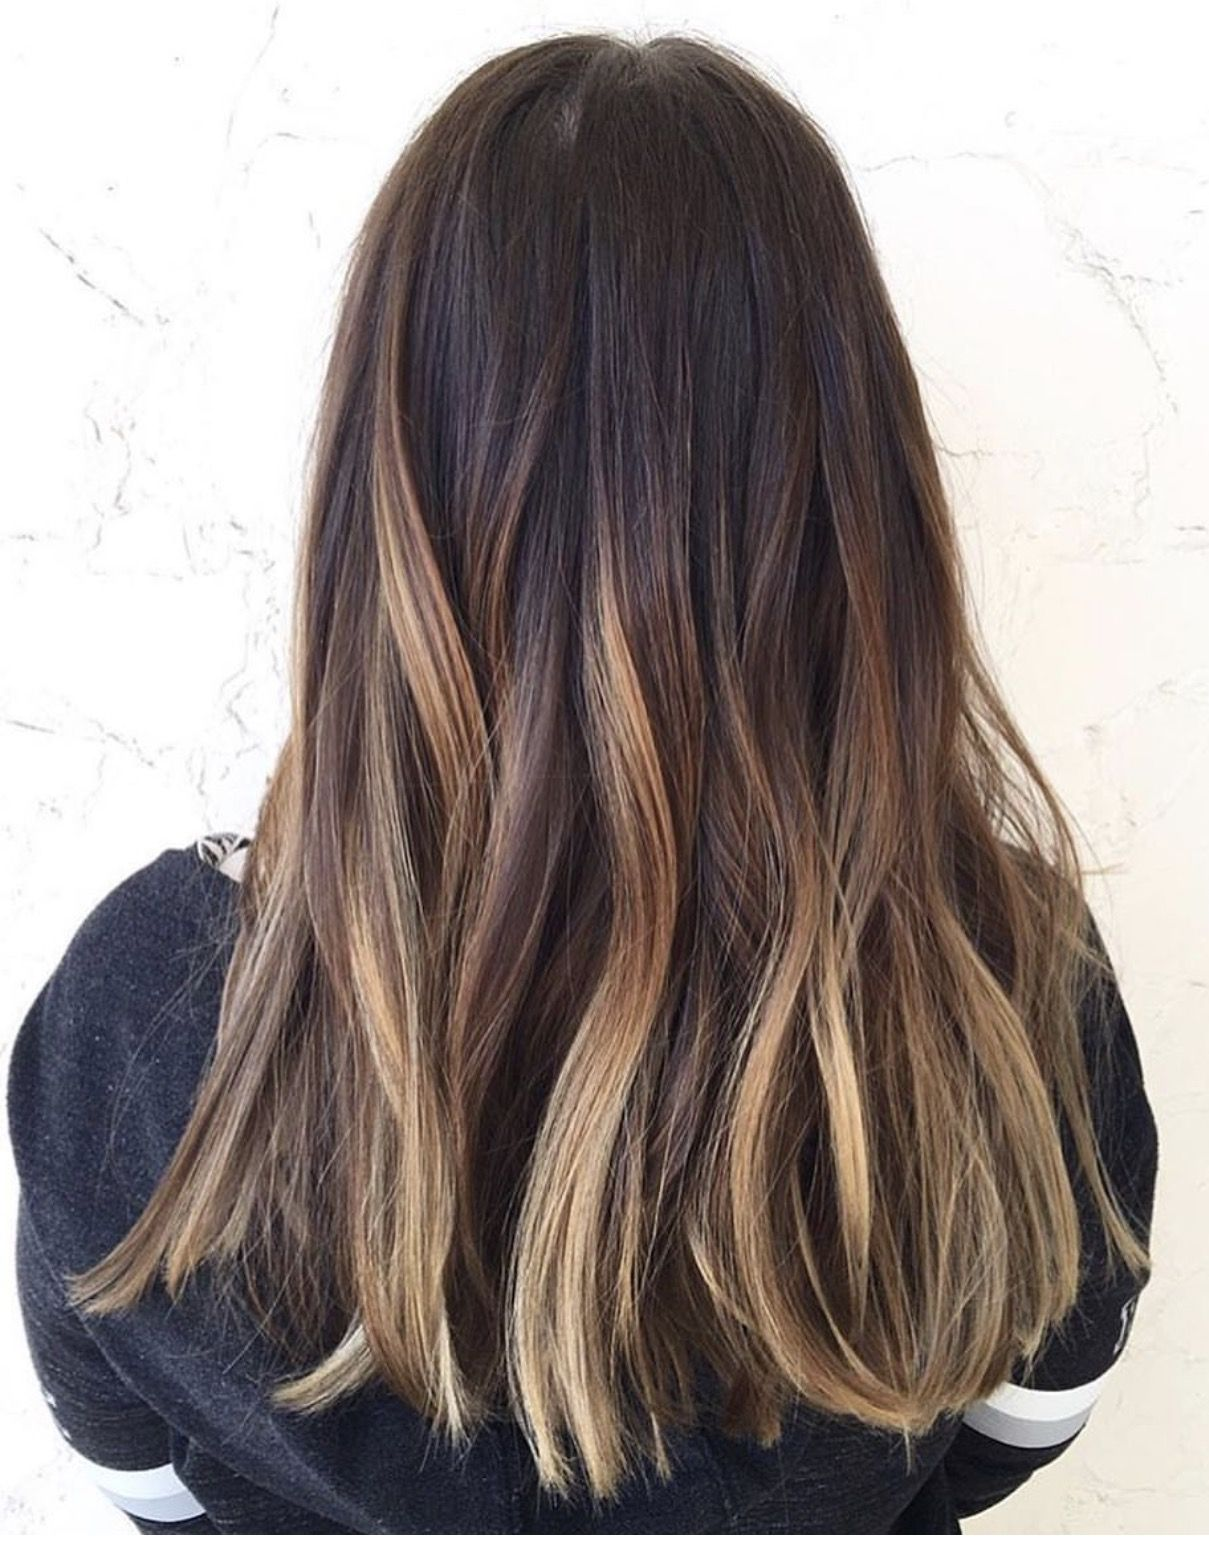 Pin By Haven Color Bar On Hairstyles Hair Styles Best Hair Salon Long Hair Styles